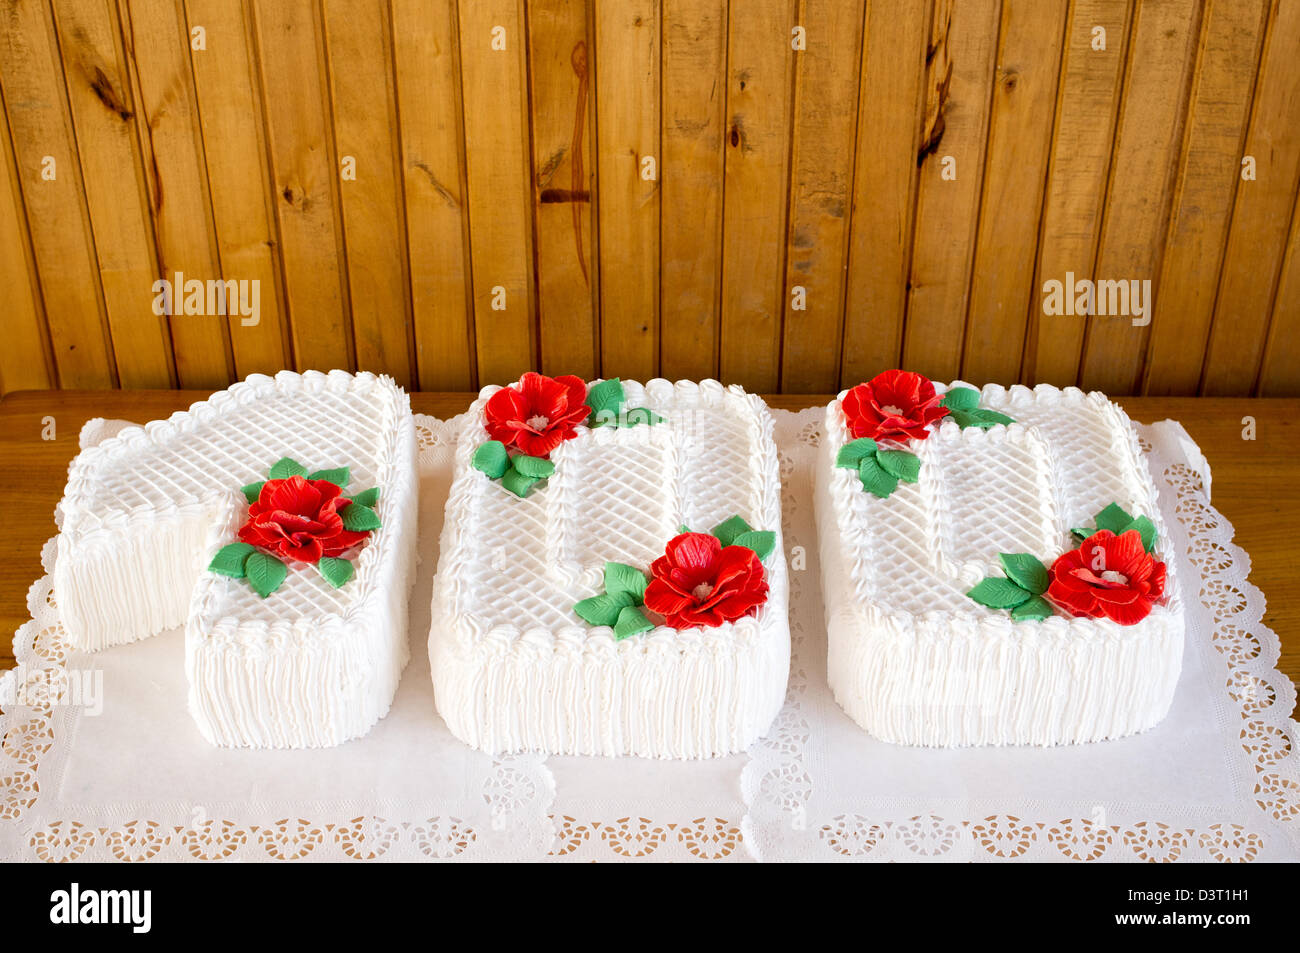 100 Years Old Cake Stock Photos & 100 Years Old Cake Stock Images ...